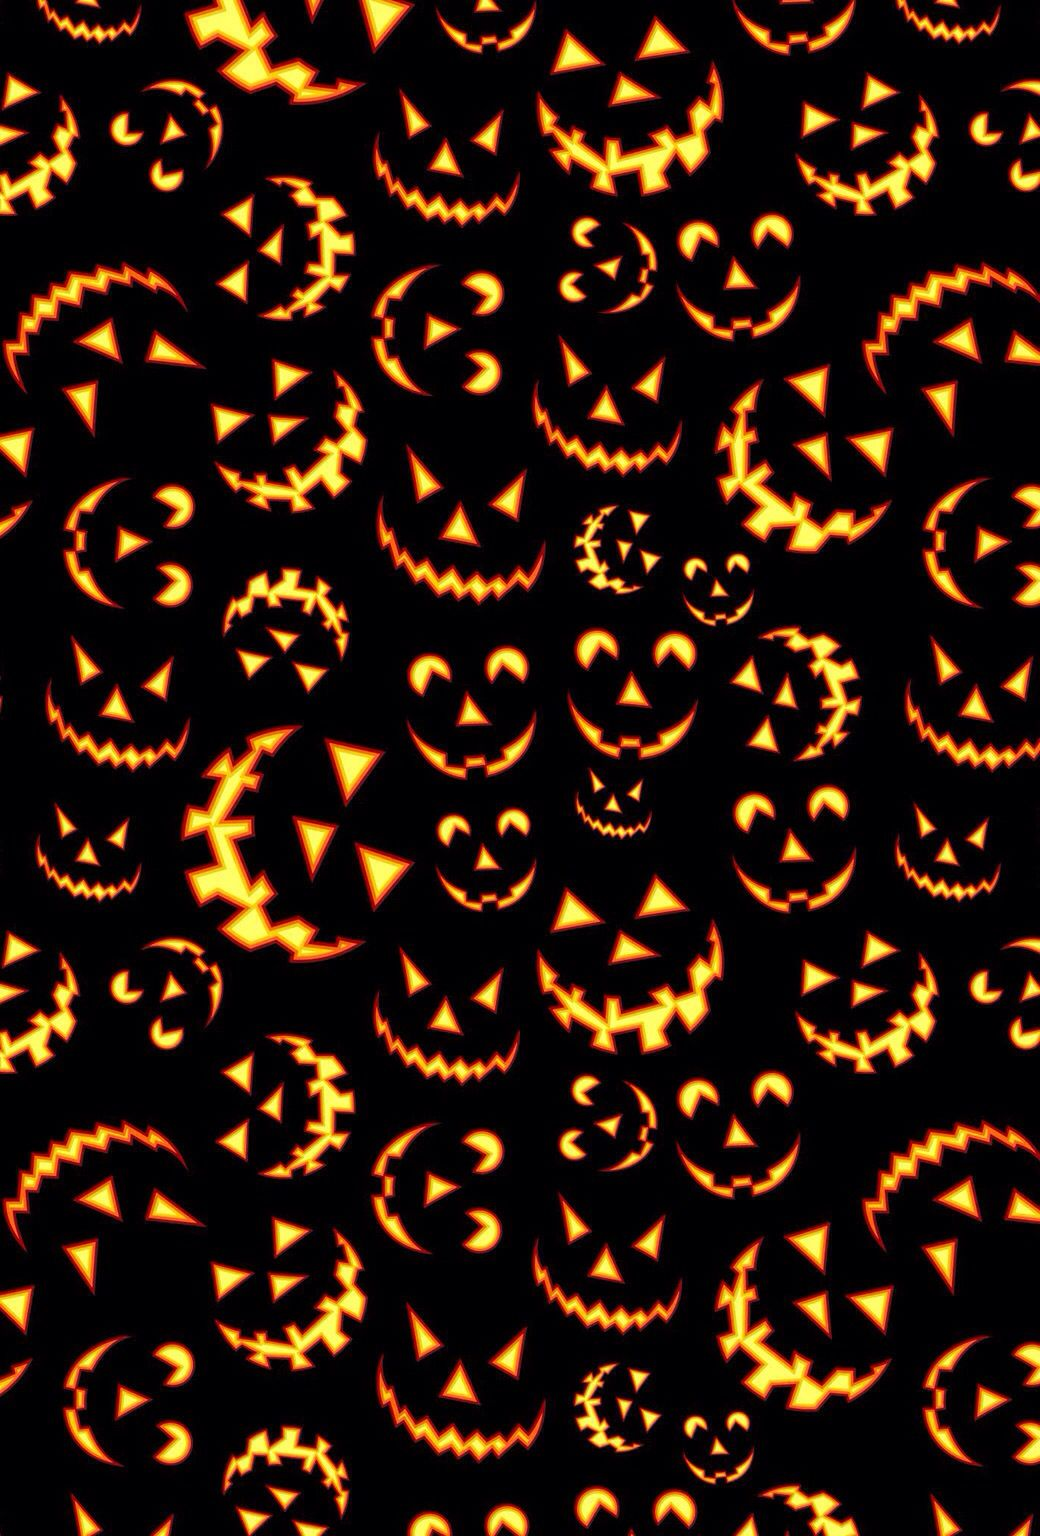 Cool Background Halloween Screen Savers Halloween Backgrounds Halloween Art